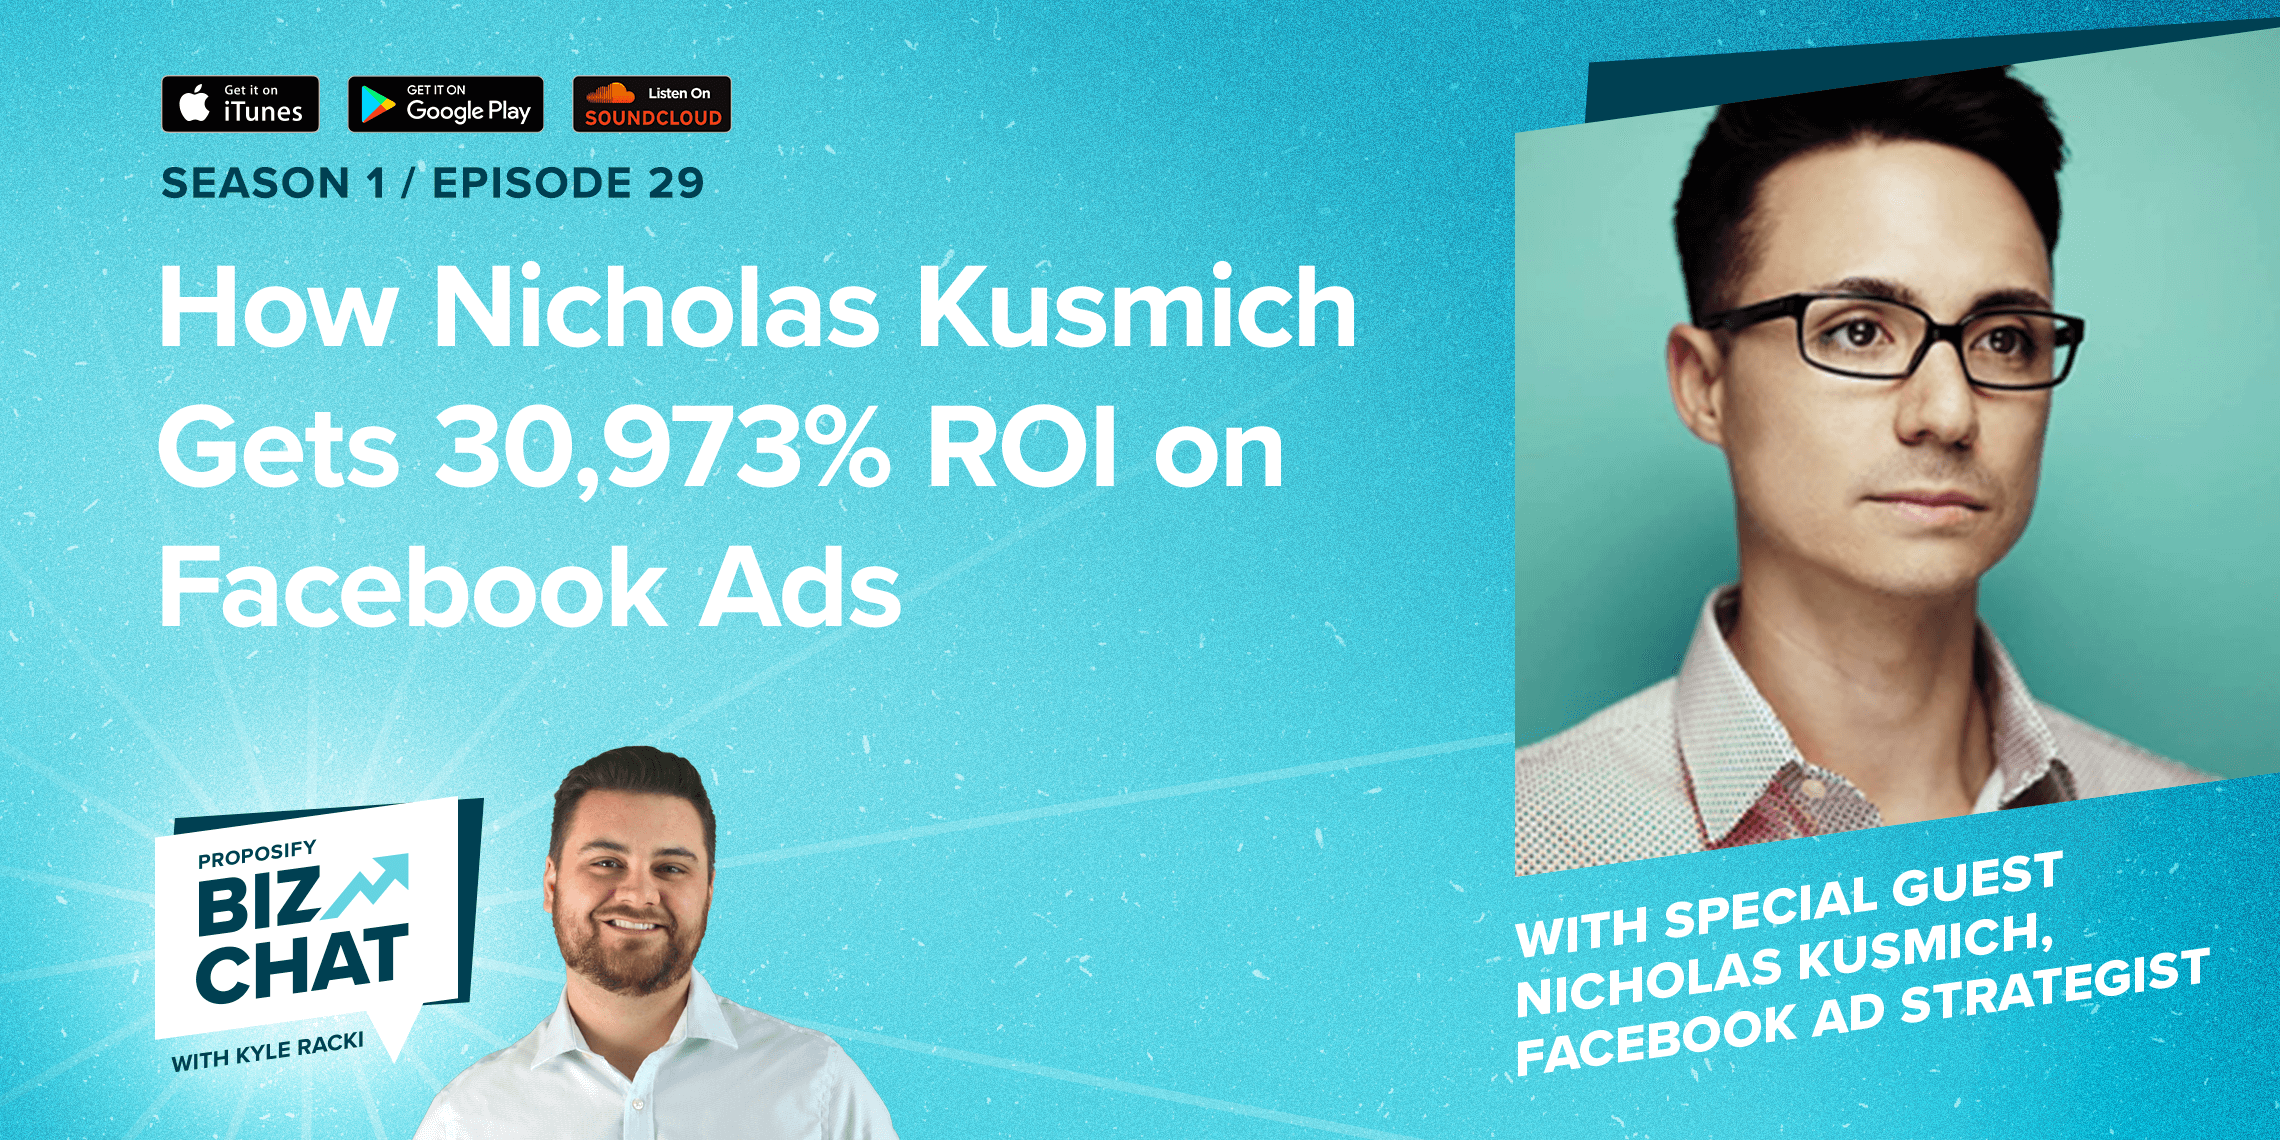 How Nicholas Kusmich Gets 30,973% ROI on Facebook Ads